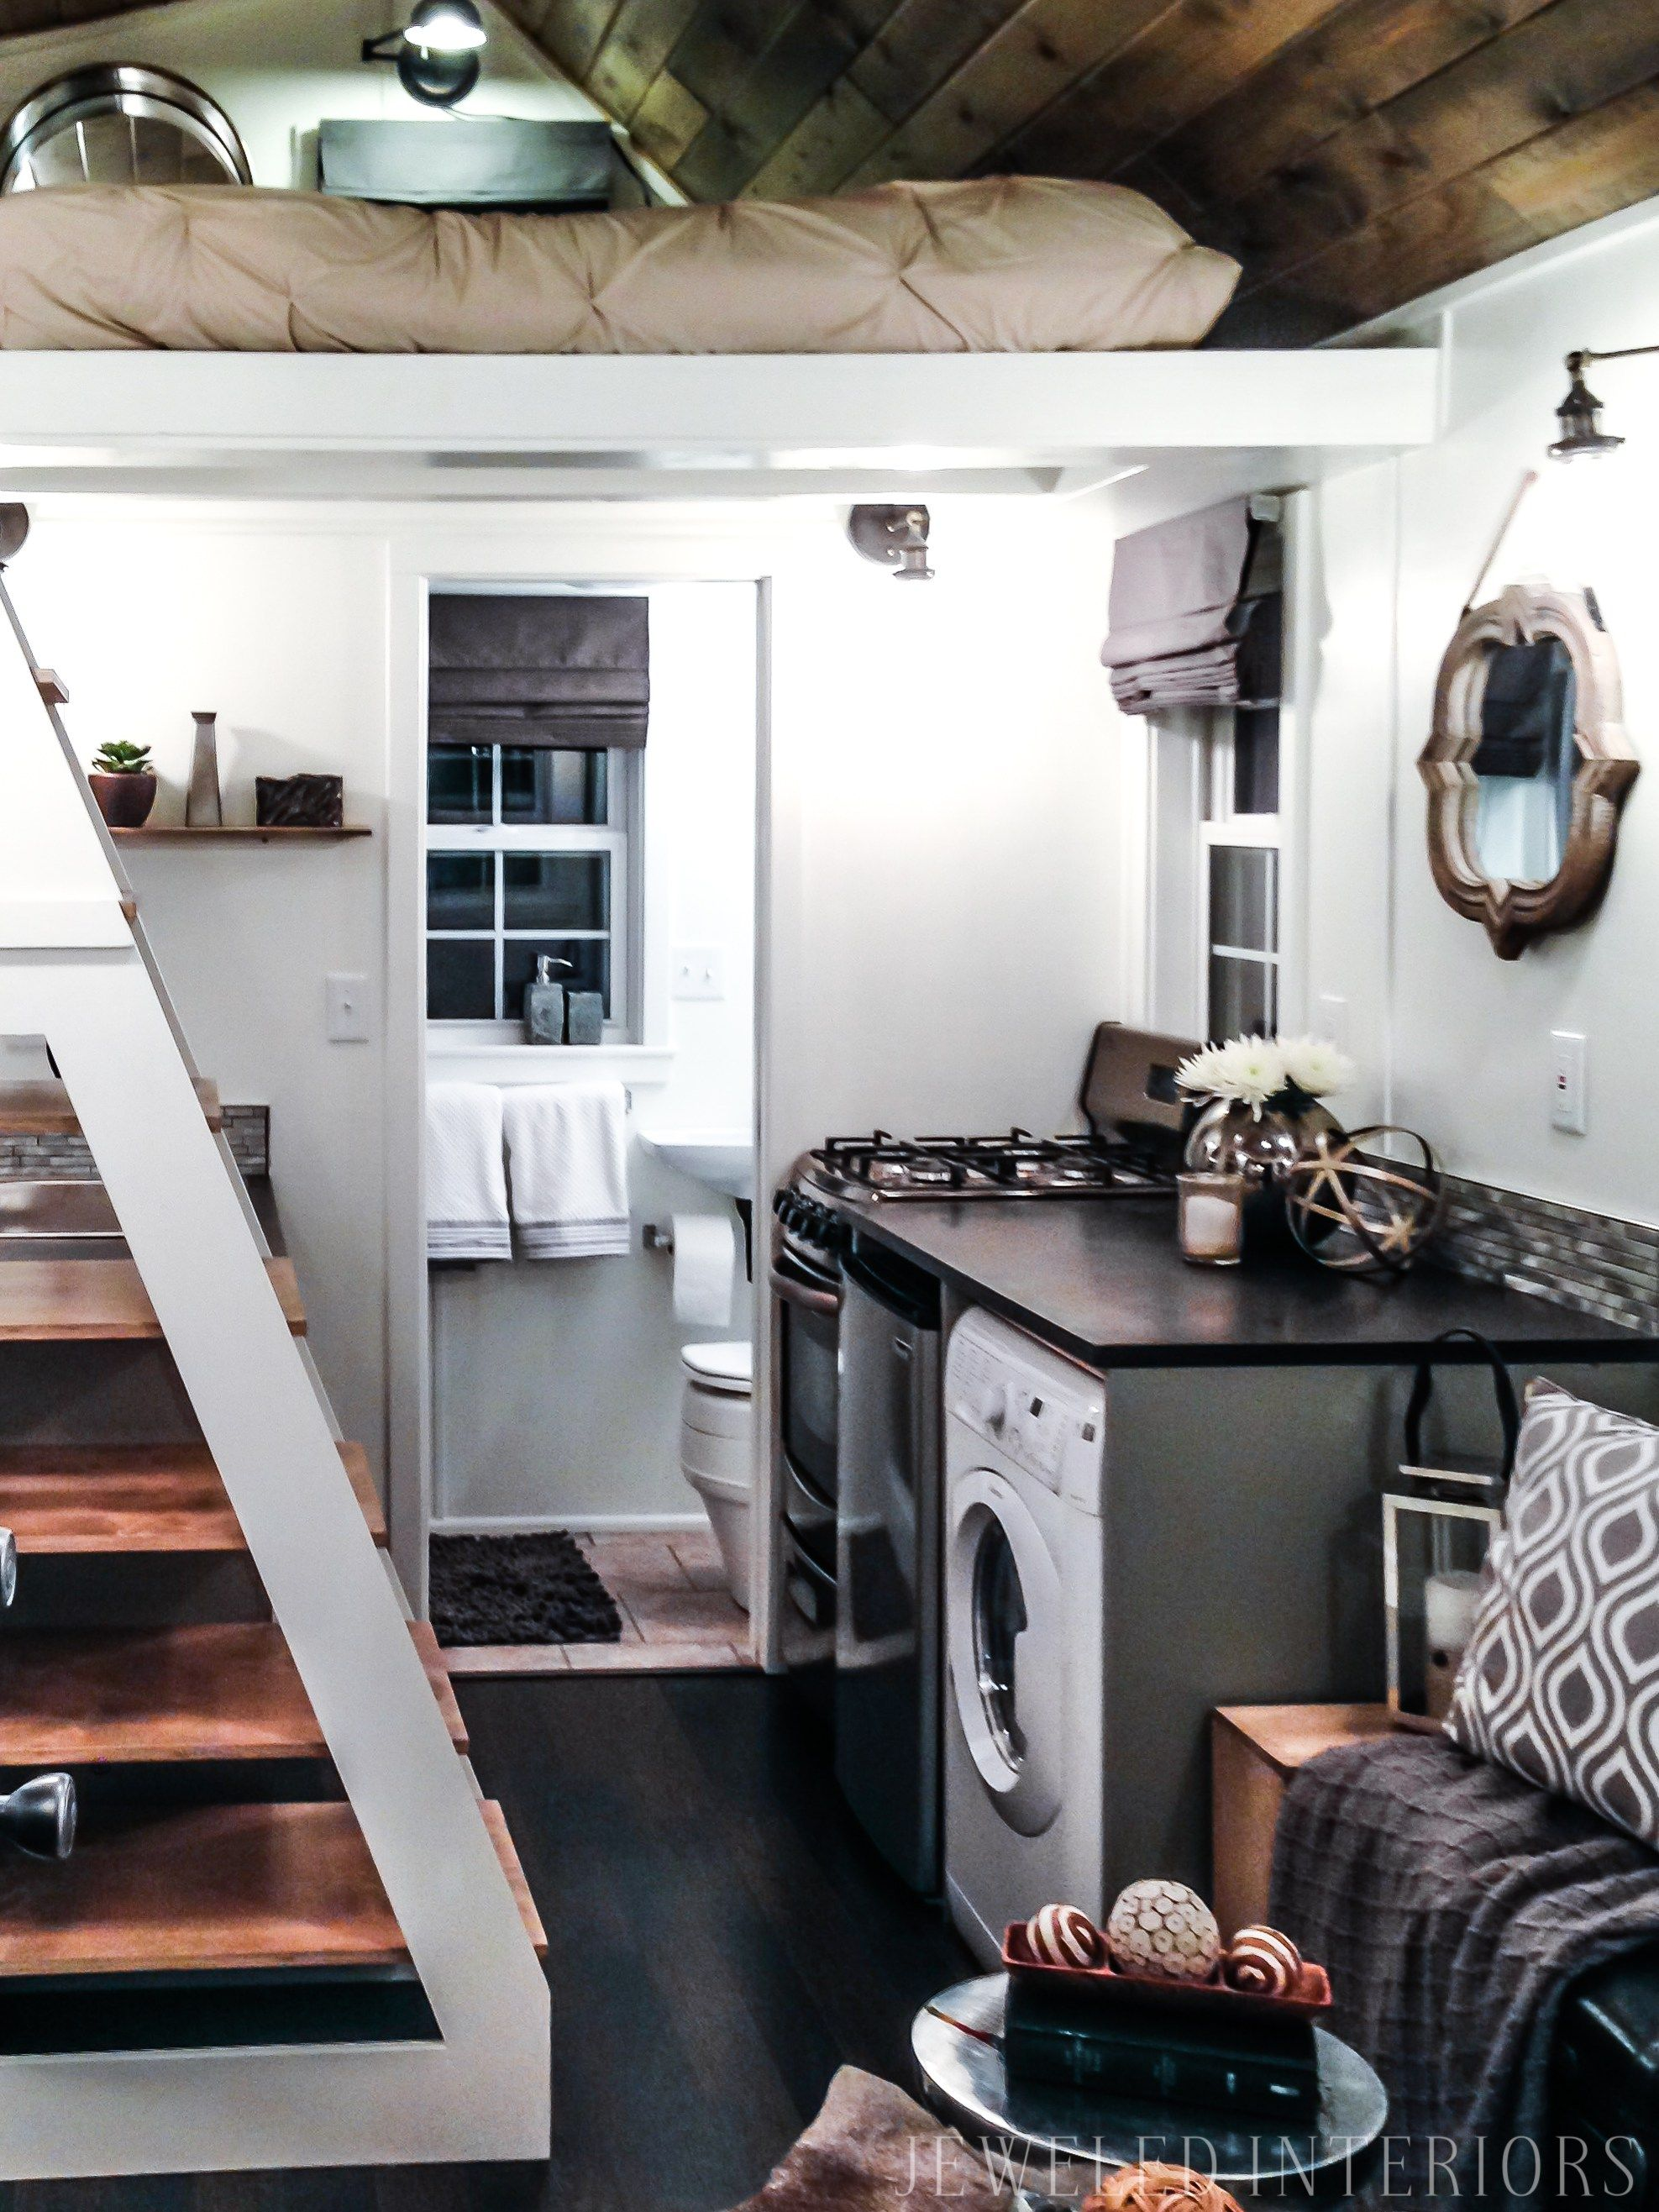 small resolution of tiny home tiny house jeweled interiors porch kitchen living room bedroom kitchen wheels loft decorate design beautiful stunning rustic chic